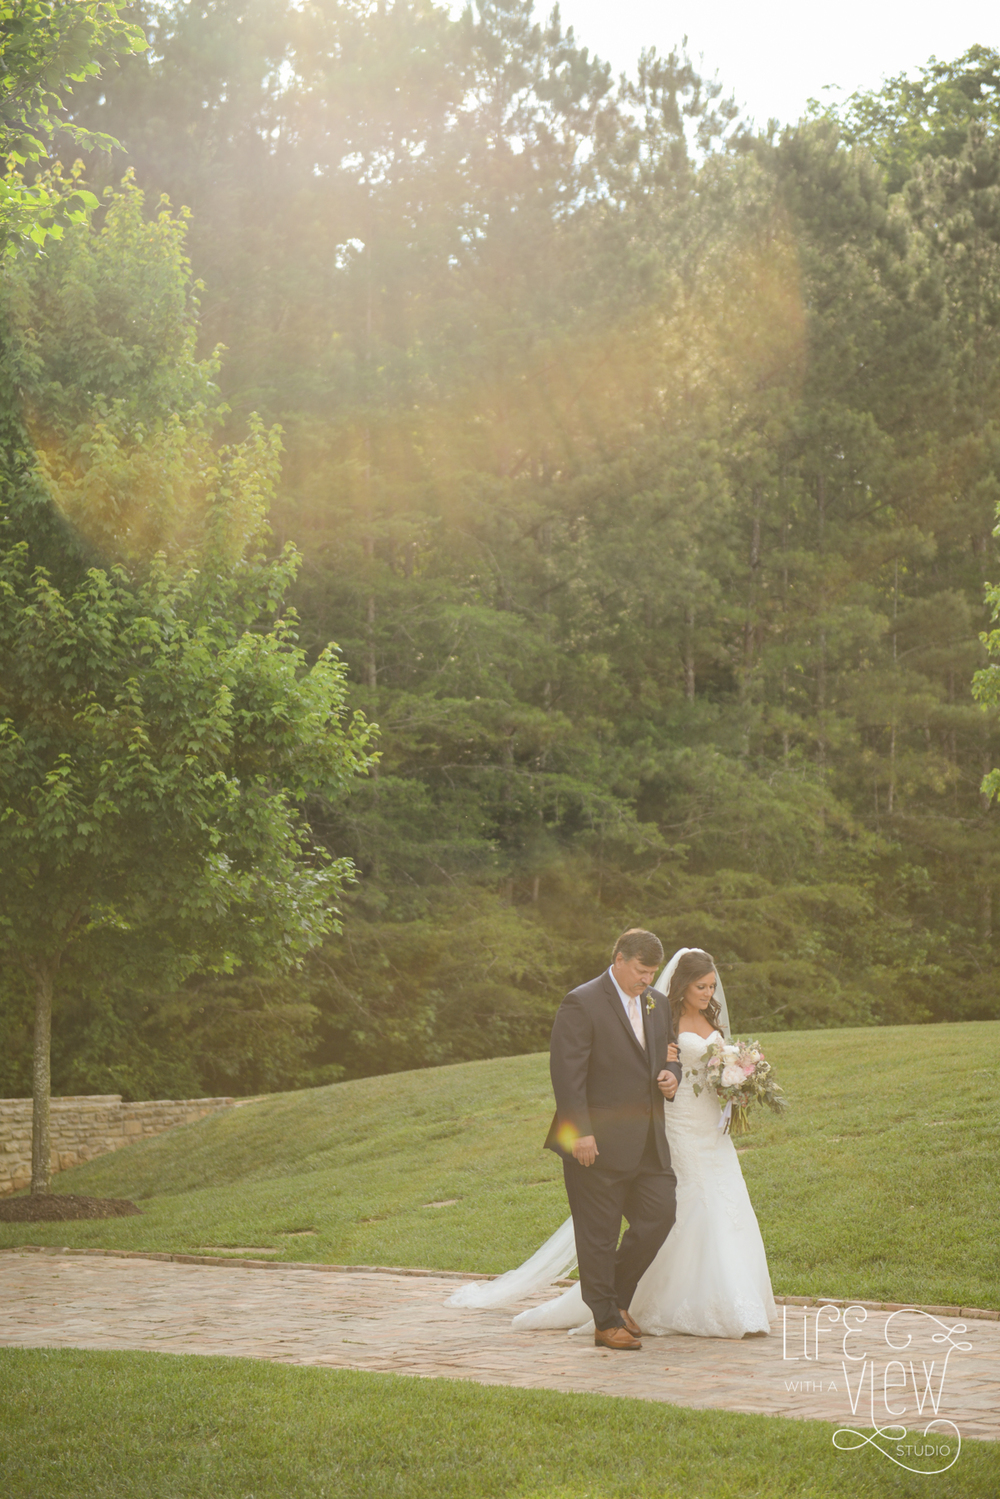 Sumner-Wedding-87.jpg